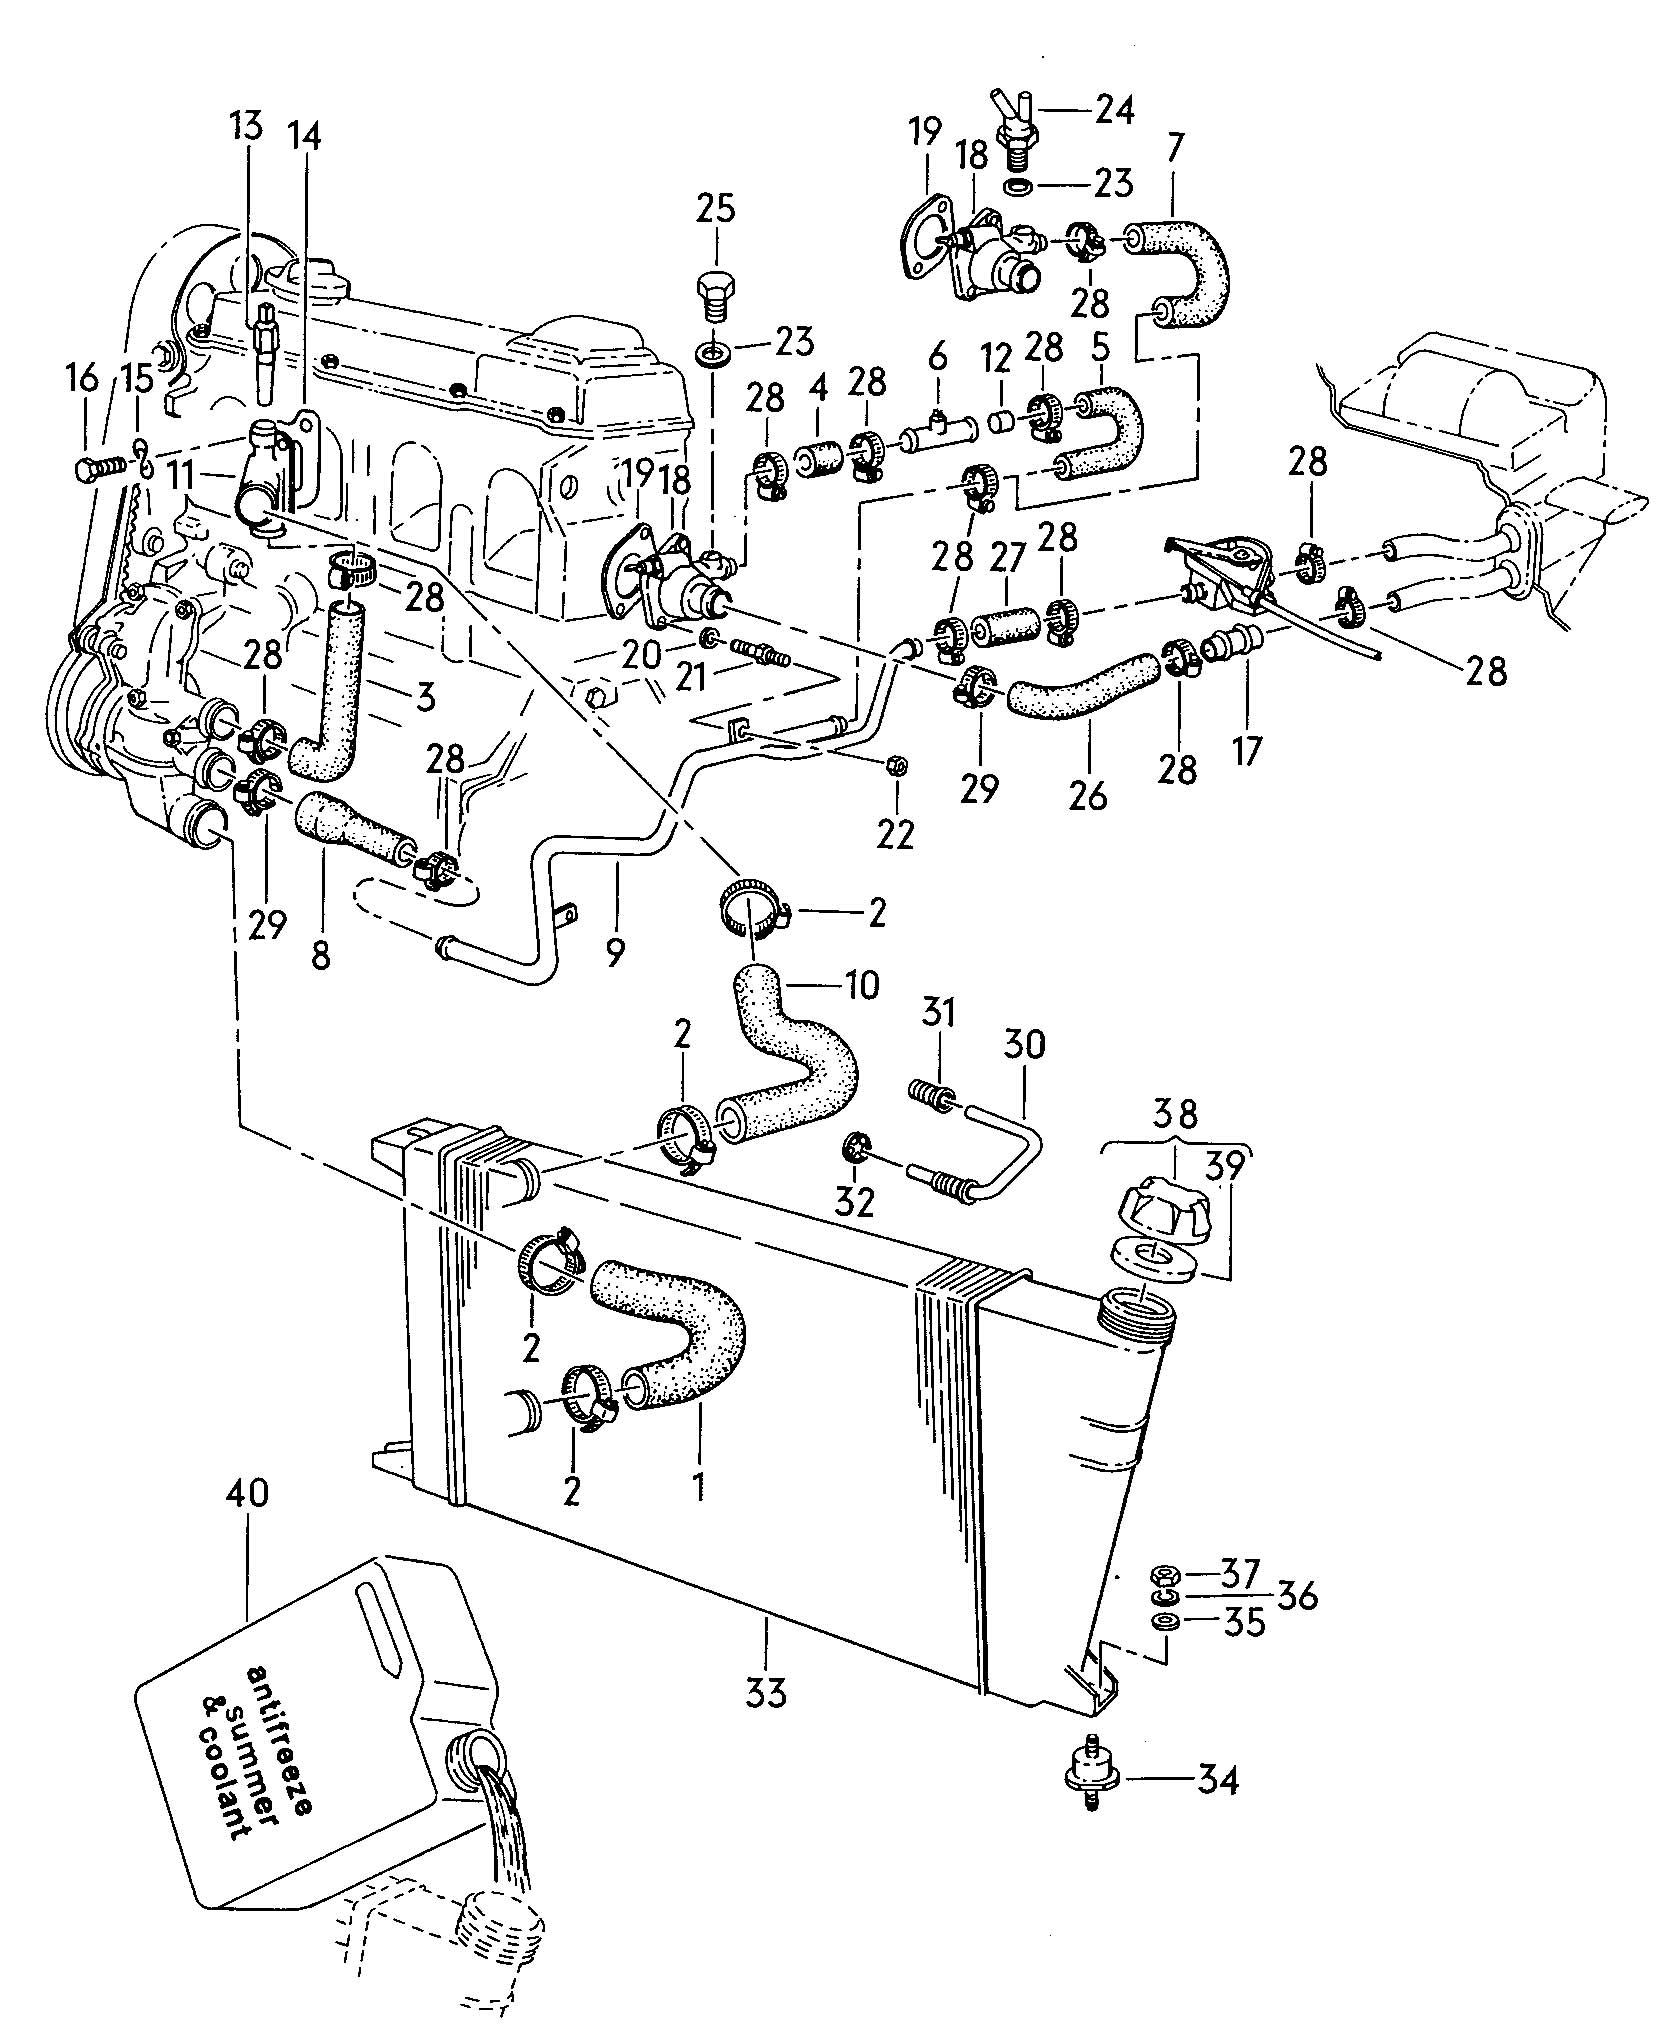 Bestseller: Toyota 2kd Ftv Engine Repair Manual Pdf